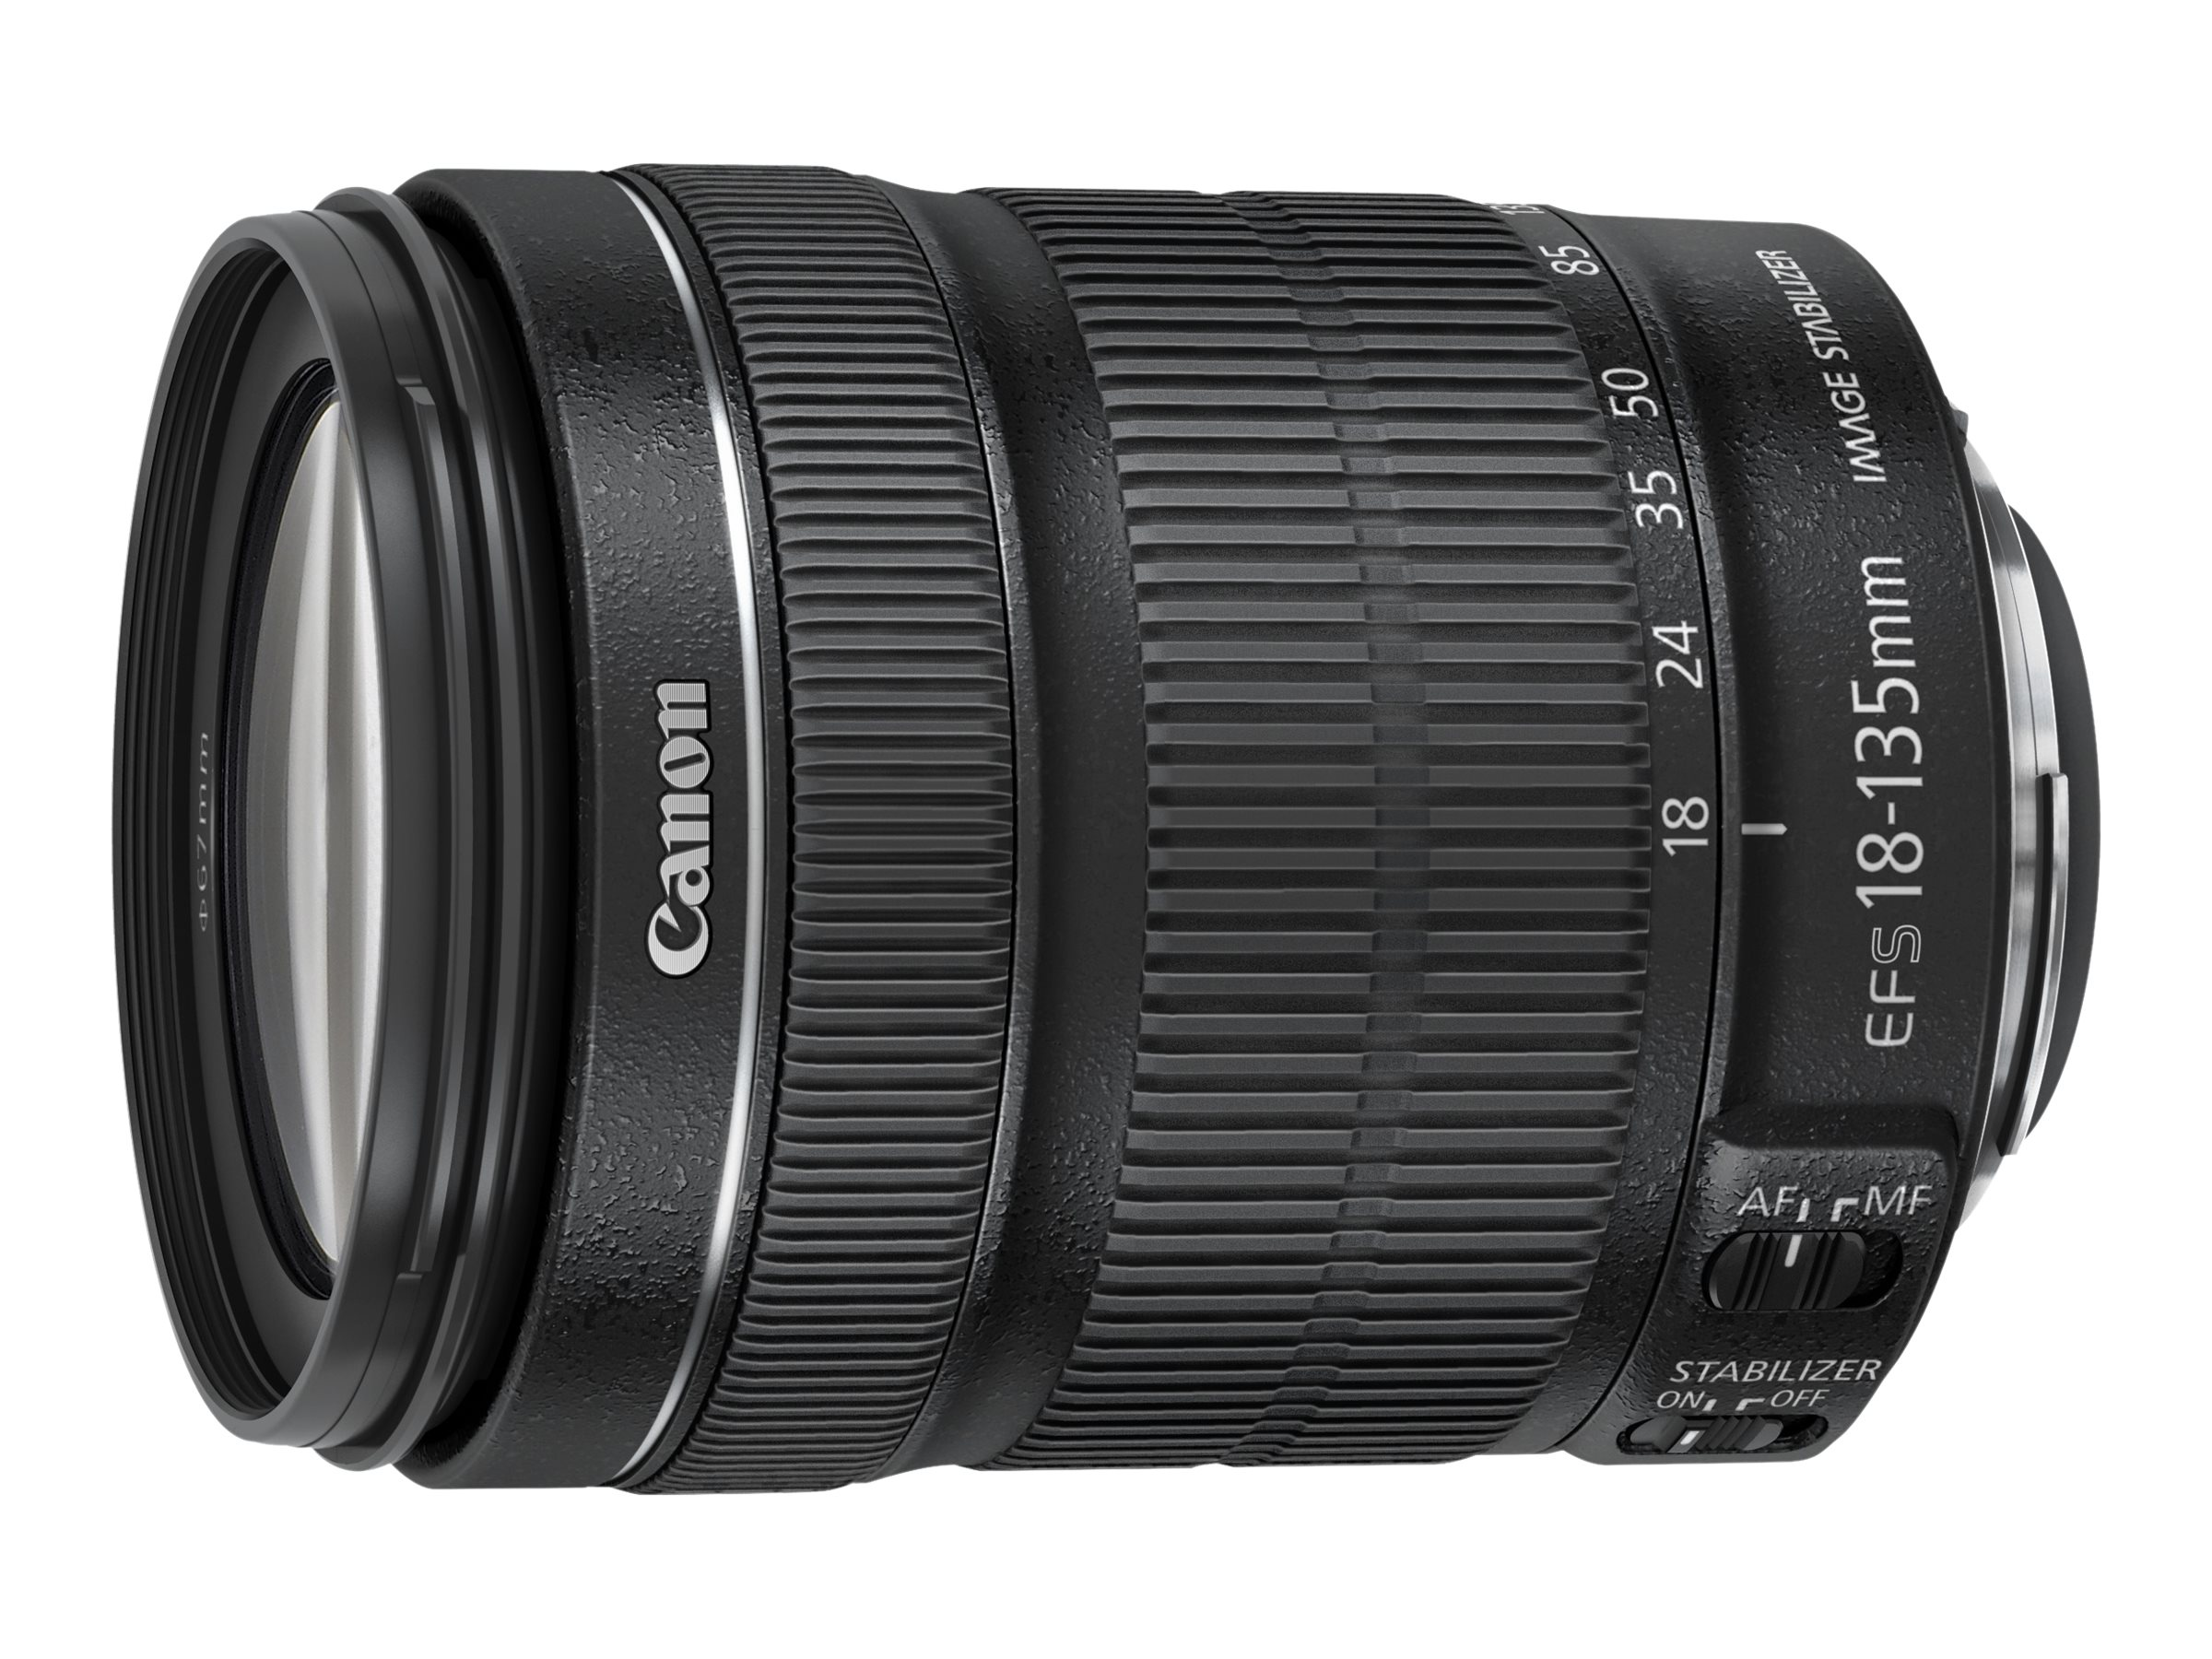 Canon EF-S - Zoomobjektiv - 18 mm - 135 mm - f/3.5-5.6 IS STM - Canon EF-S